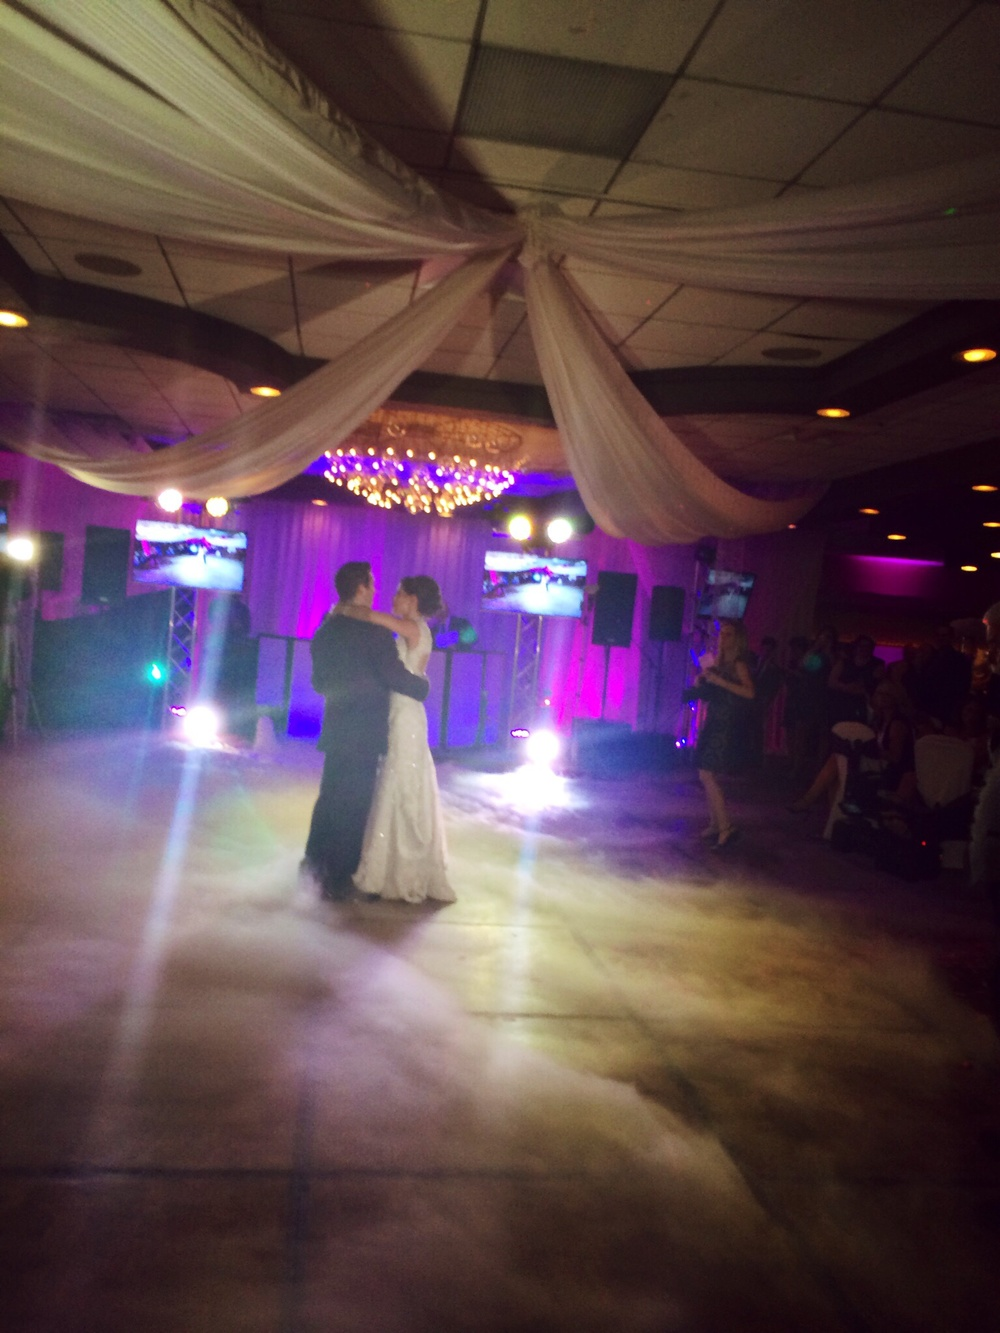 Krista and Shawn making a dramatic entrance at the Woodlands. Wilkes-Barre, PA.